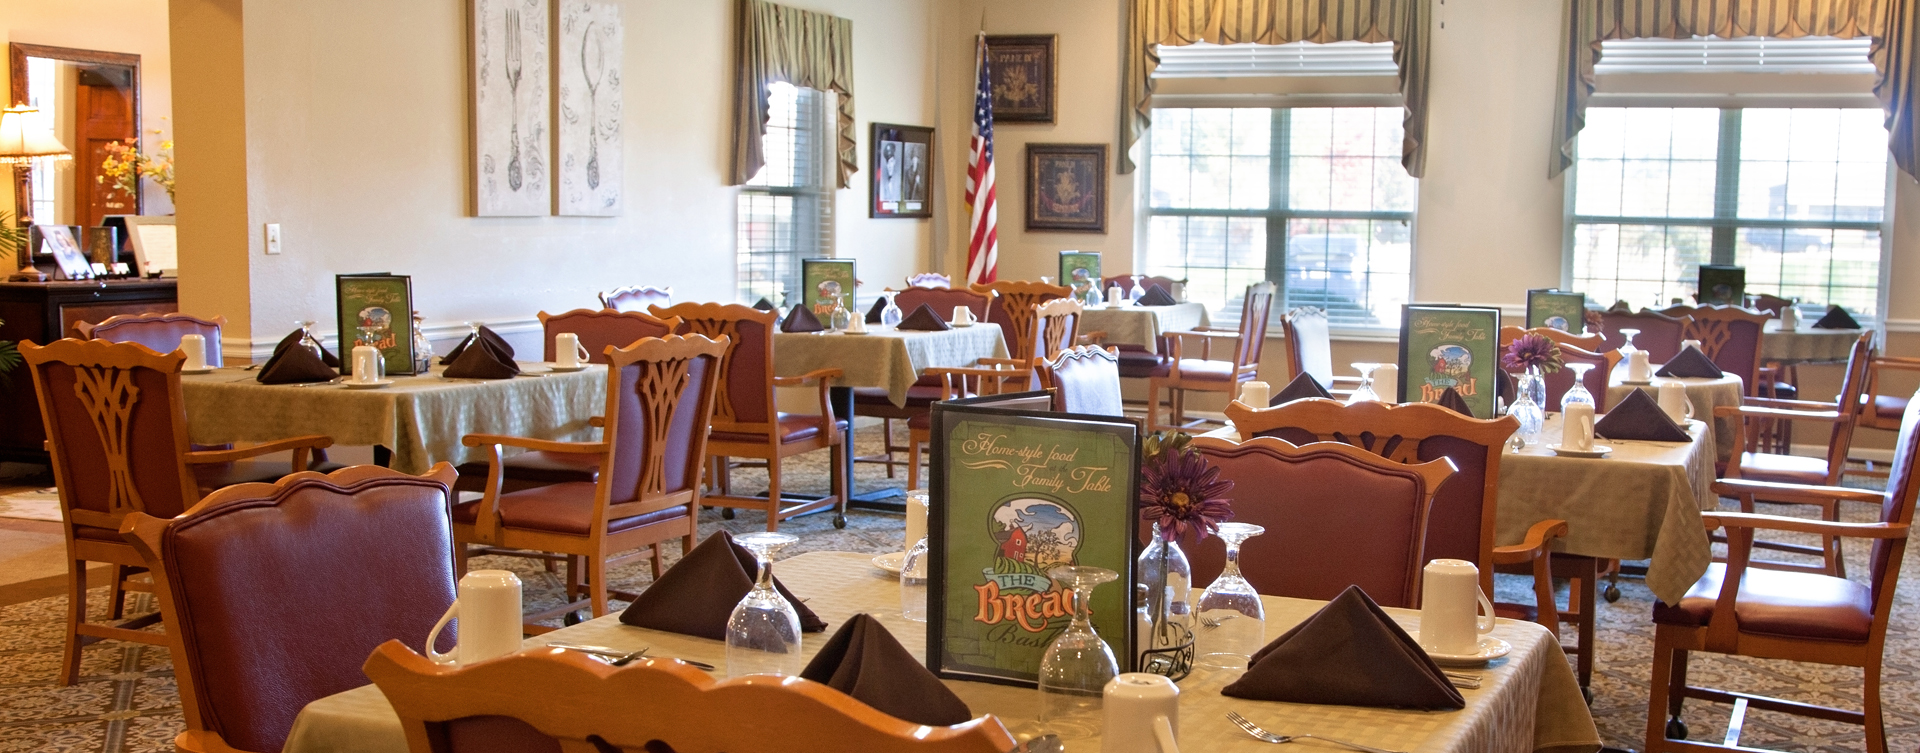 Enjoy restaurant -style meals served three times a day in our dining room at Bickford of Marion